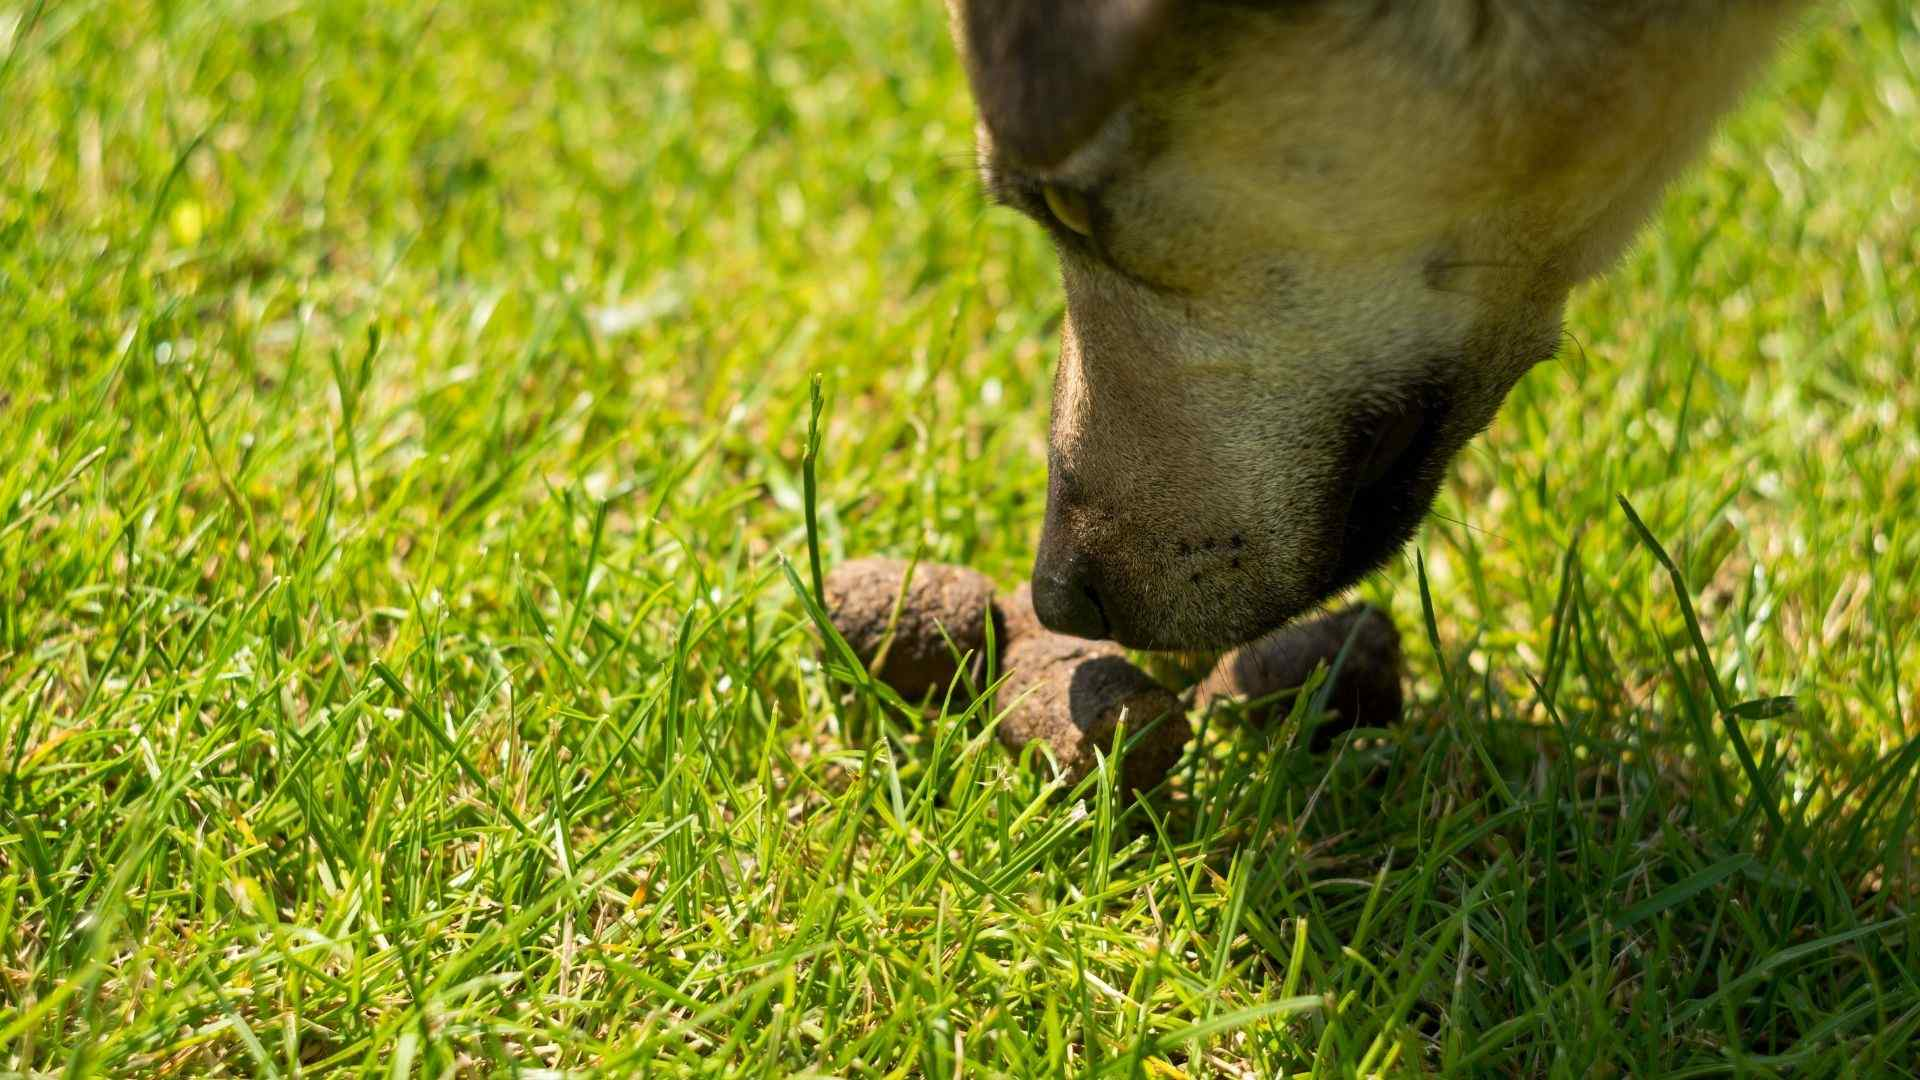 one of the weird things dogs do is eating their own poop